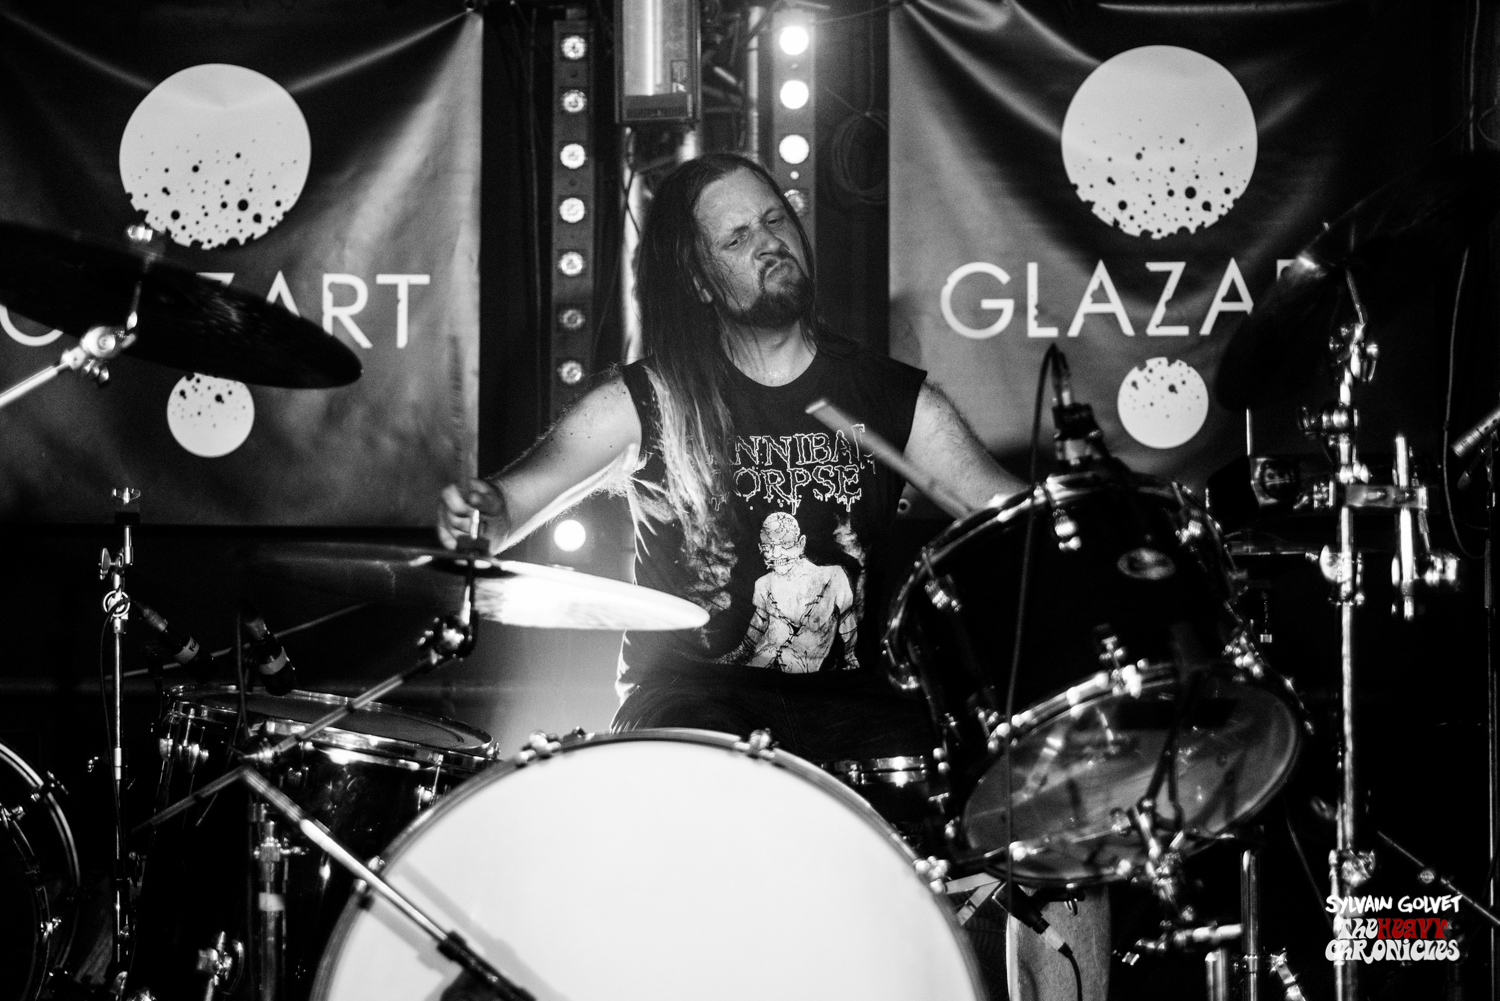 XII-BOAR-GLAZART-STONED-GATHERINGS-030717-8